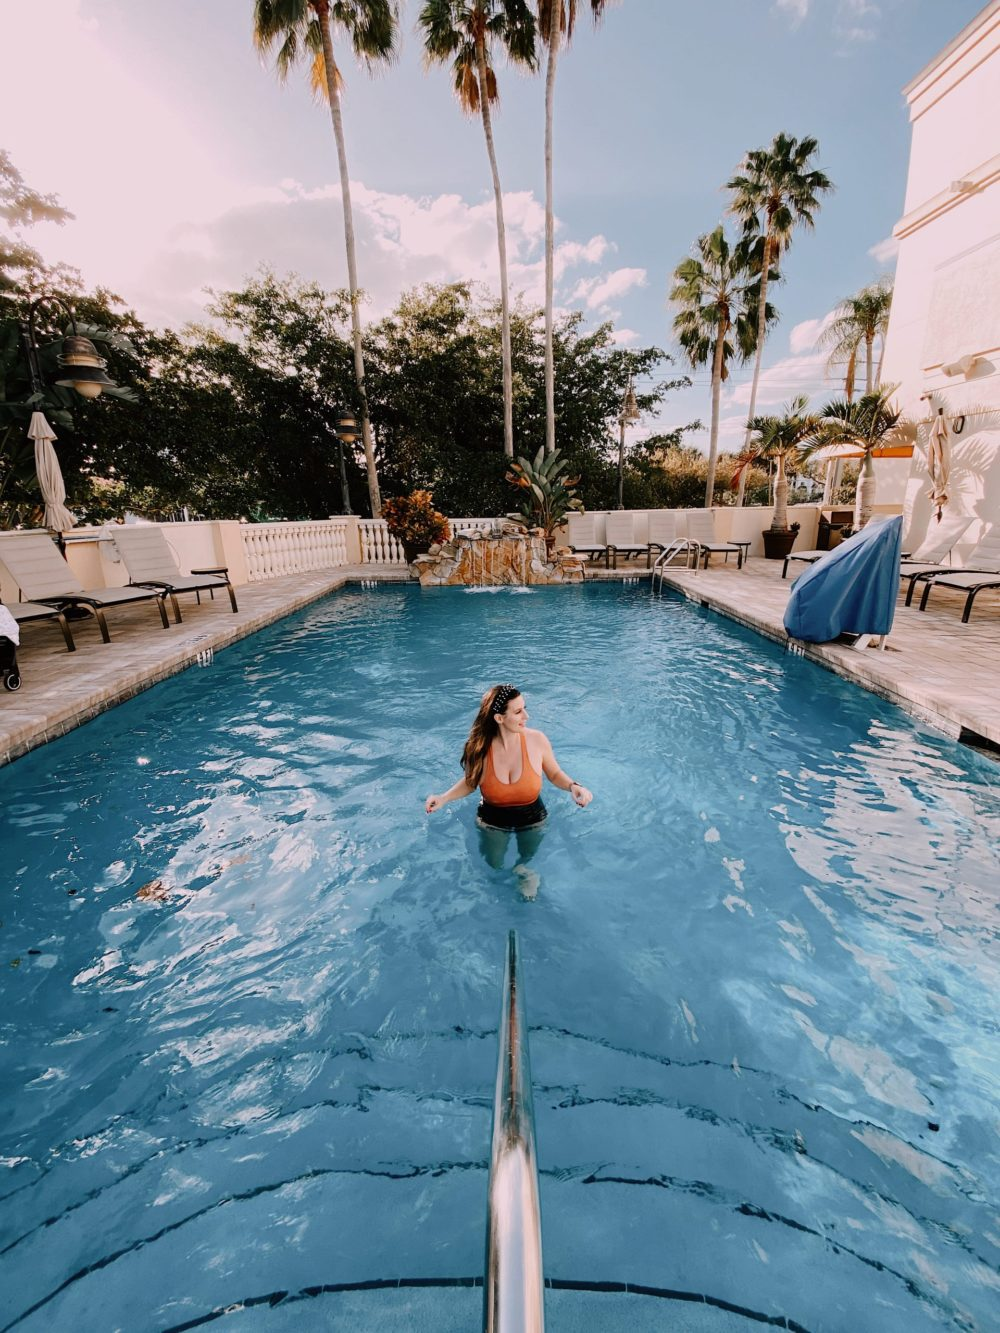 Bayfront Inn 5th Avenue in Naples, Marco Island and the Everglades - Florida's Paradise Coast | Spectacular Things to Do in Naples FL This Weekend by popular Florida blog, Fresh Mommy Blog: image of a woman in a swimming pool at Bayfront Inn.